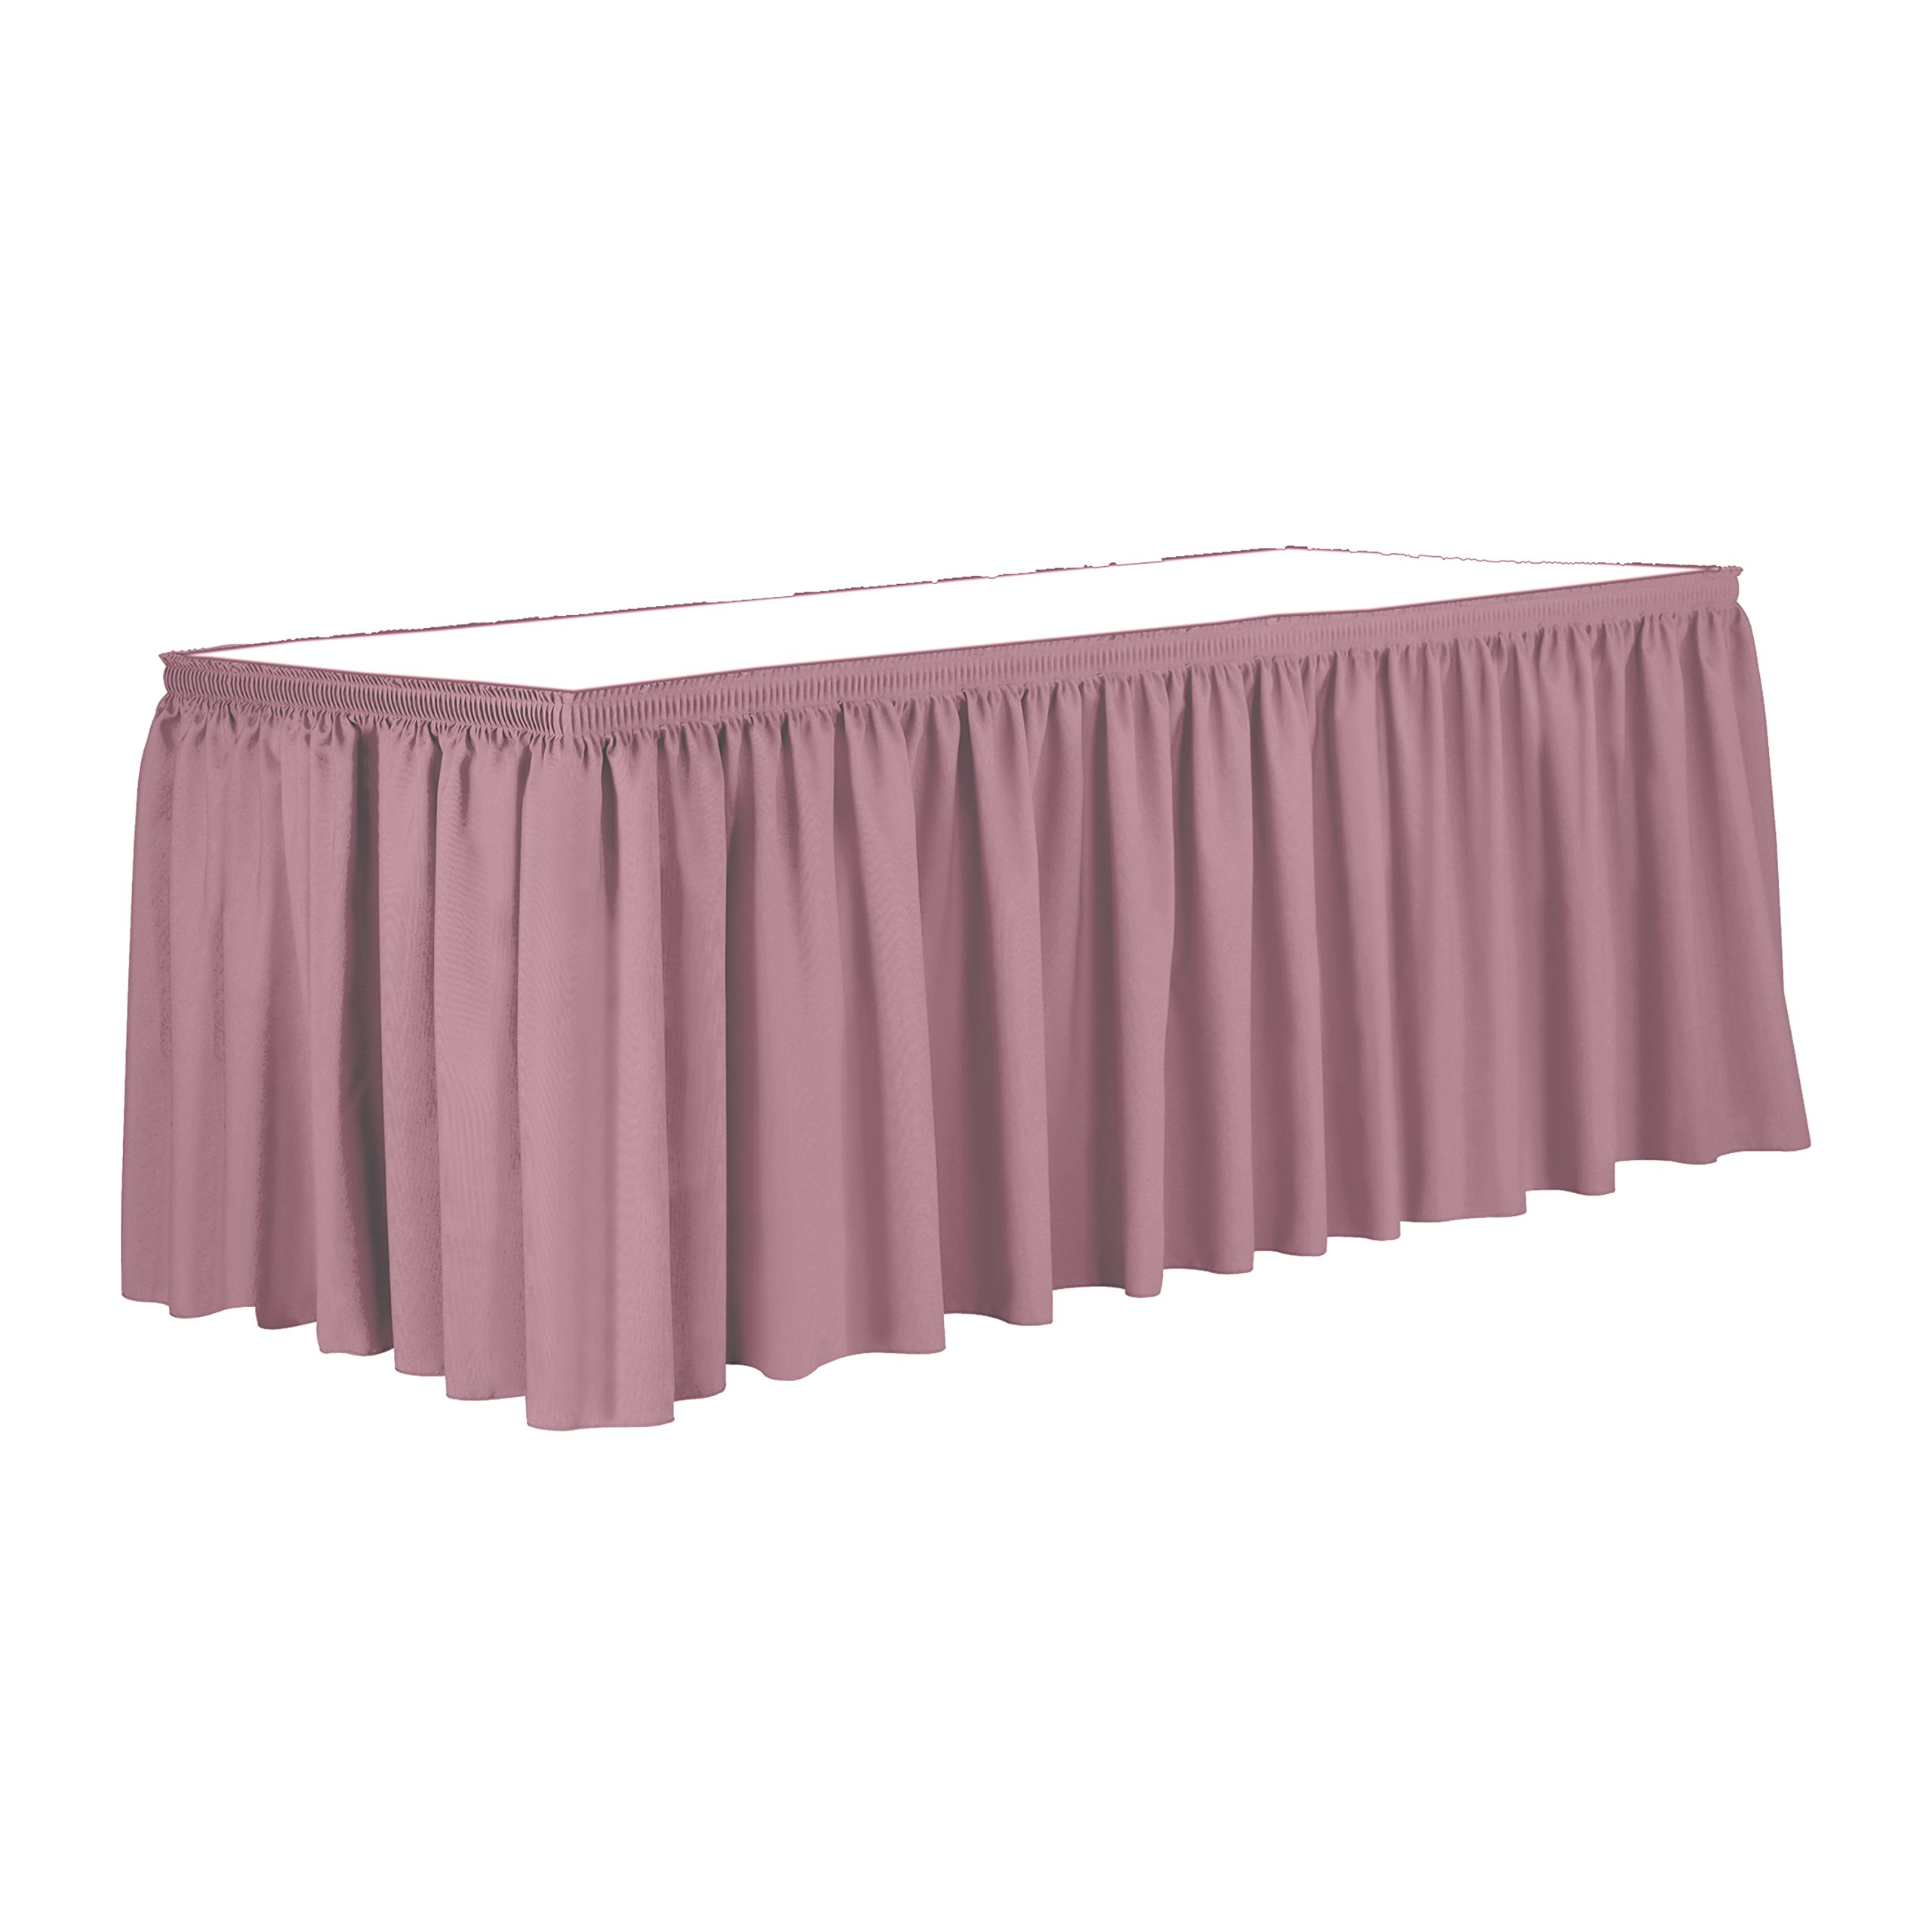 Ultimate Textile 14 ft. Shirred Pleat Polyester Table Skirt - 36'' Counter Serving Height, Dusty Rose Pink